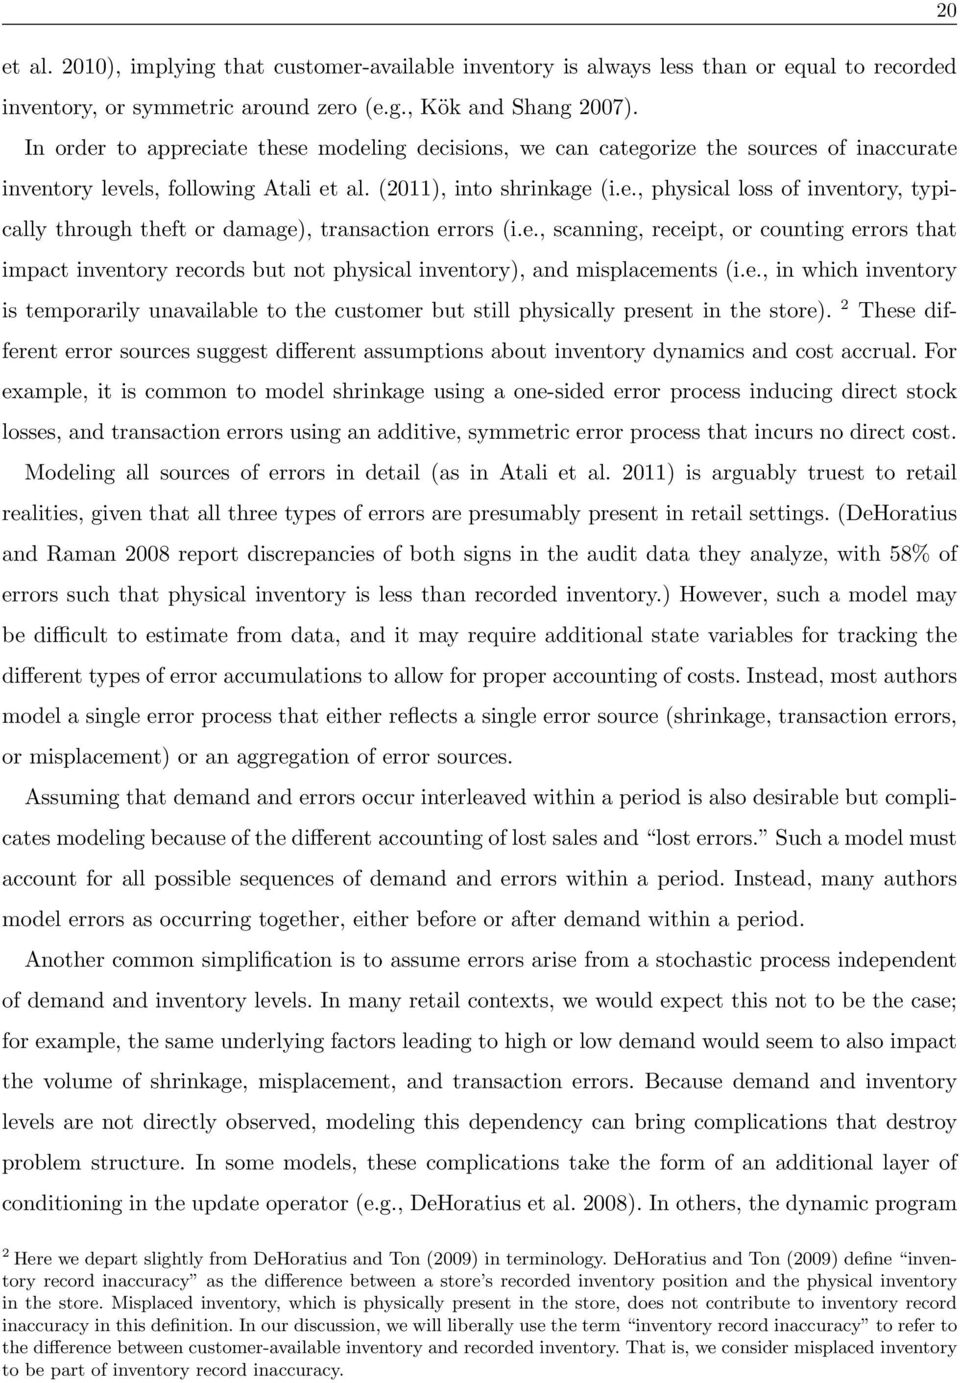 e., scanning, receipt, or counting errors that impact inventory records but not physical inventory), and misplacements (i.e., in which inventory is temporarily unavailable to the customer but still physically present in the store).